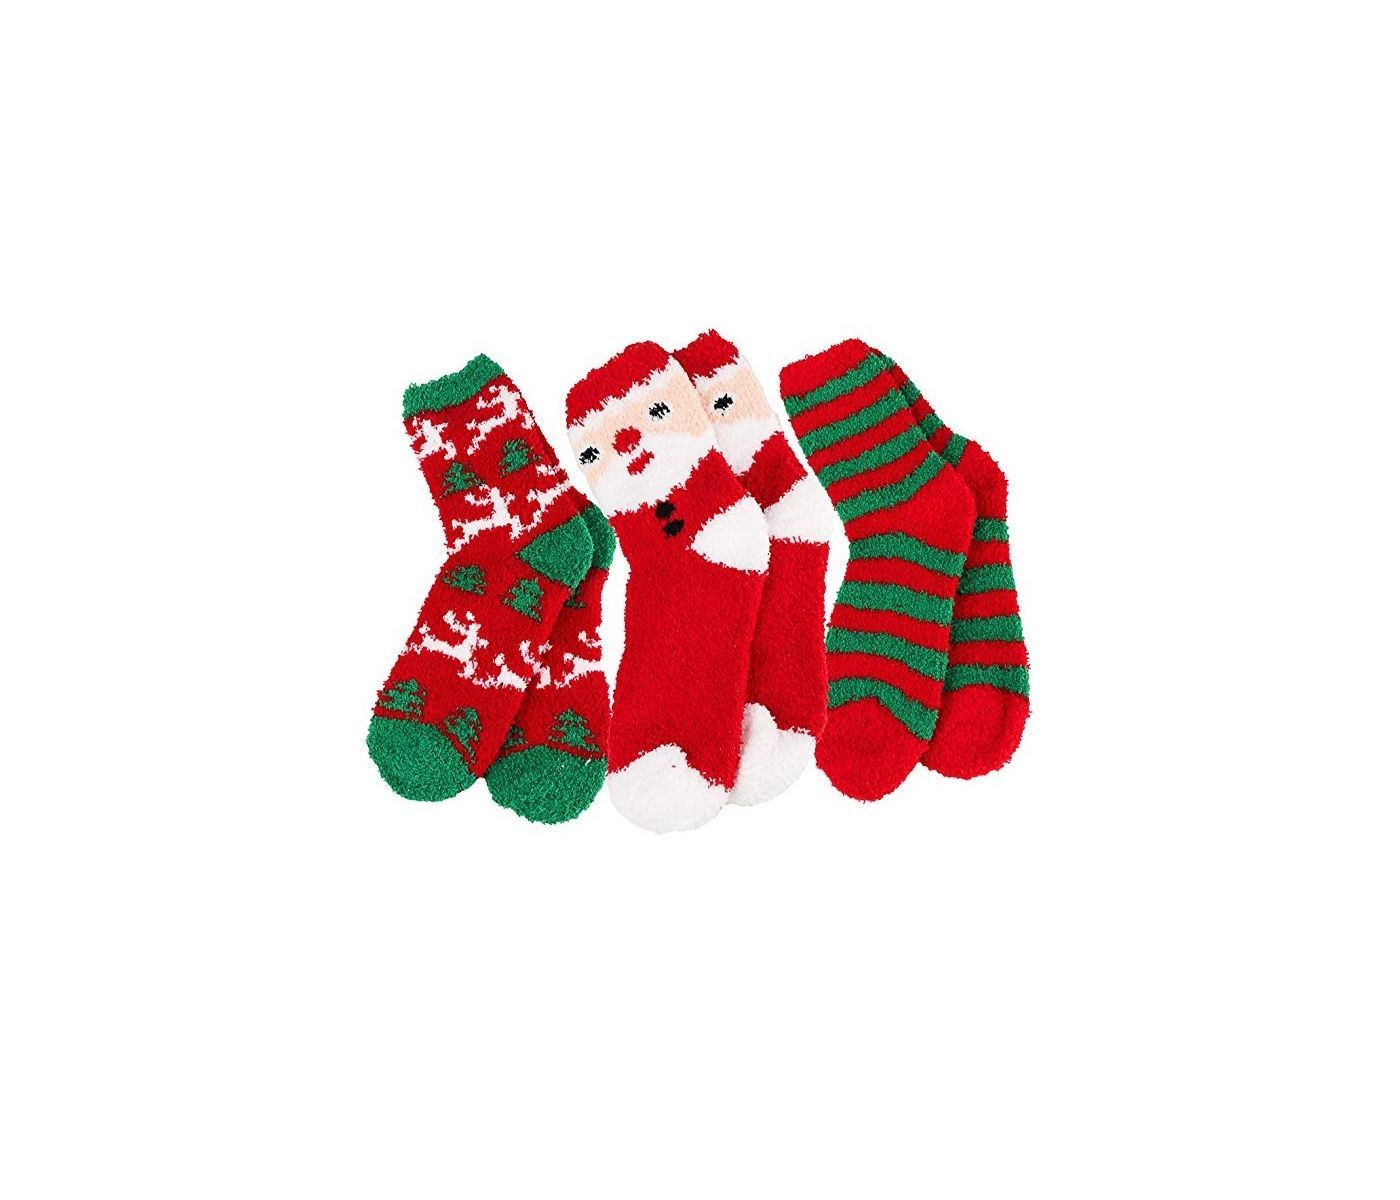 Details about  /Women/'s Girls Christmas Fluffy Socks Ankle-High Winter Warm Stockings Xmas Gift